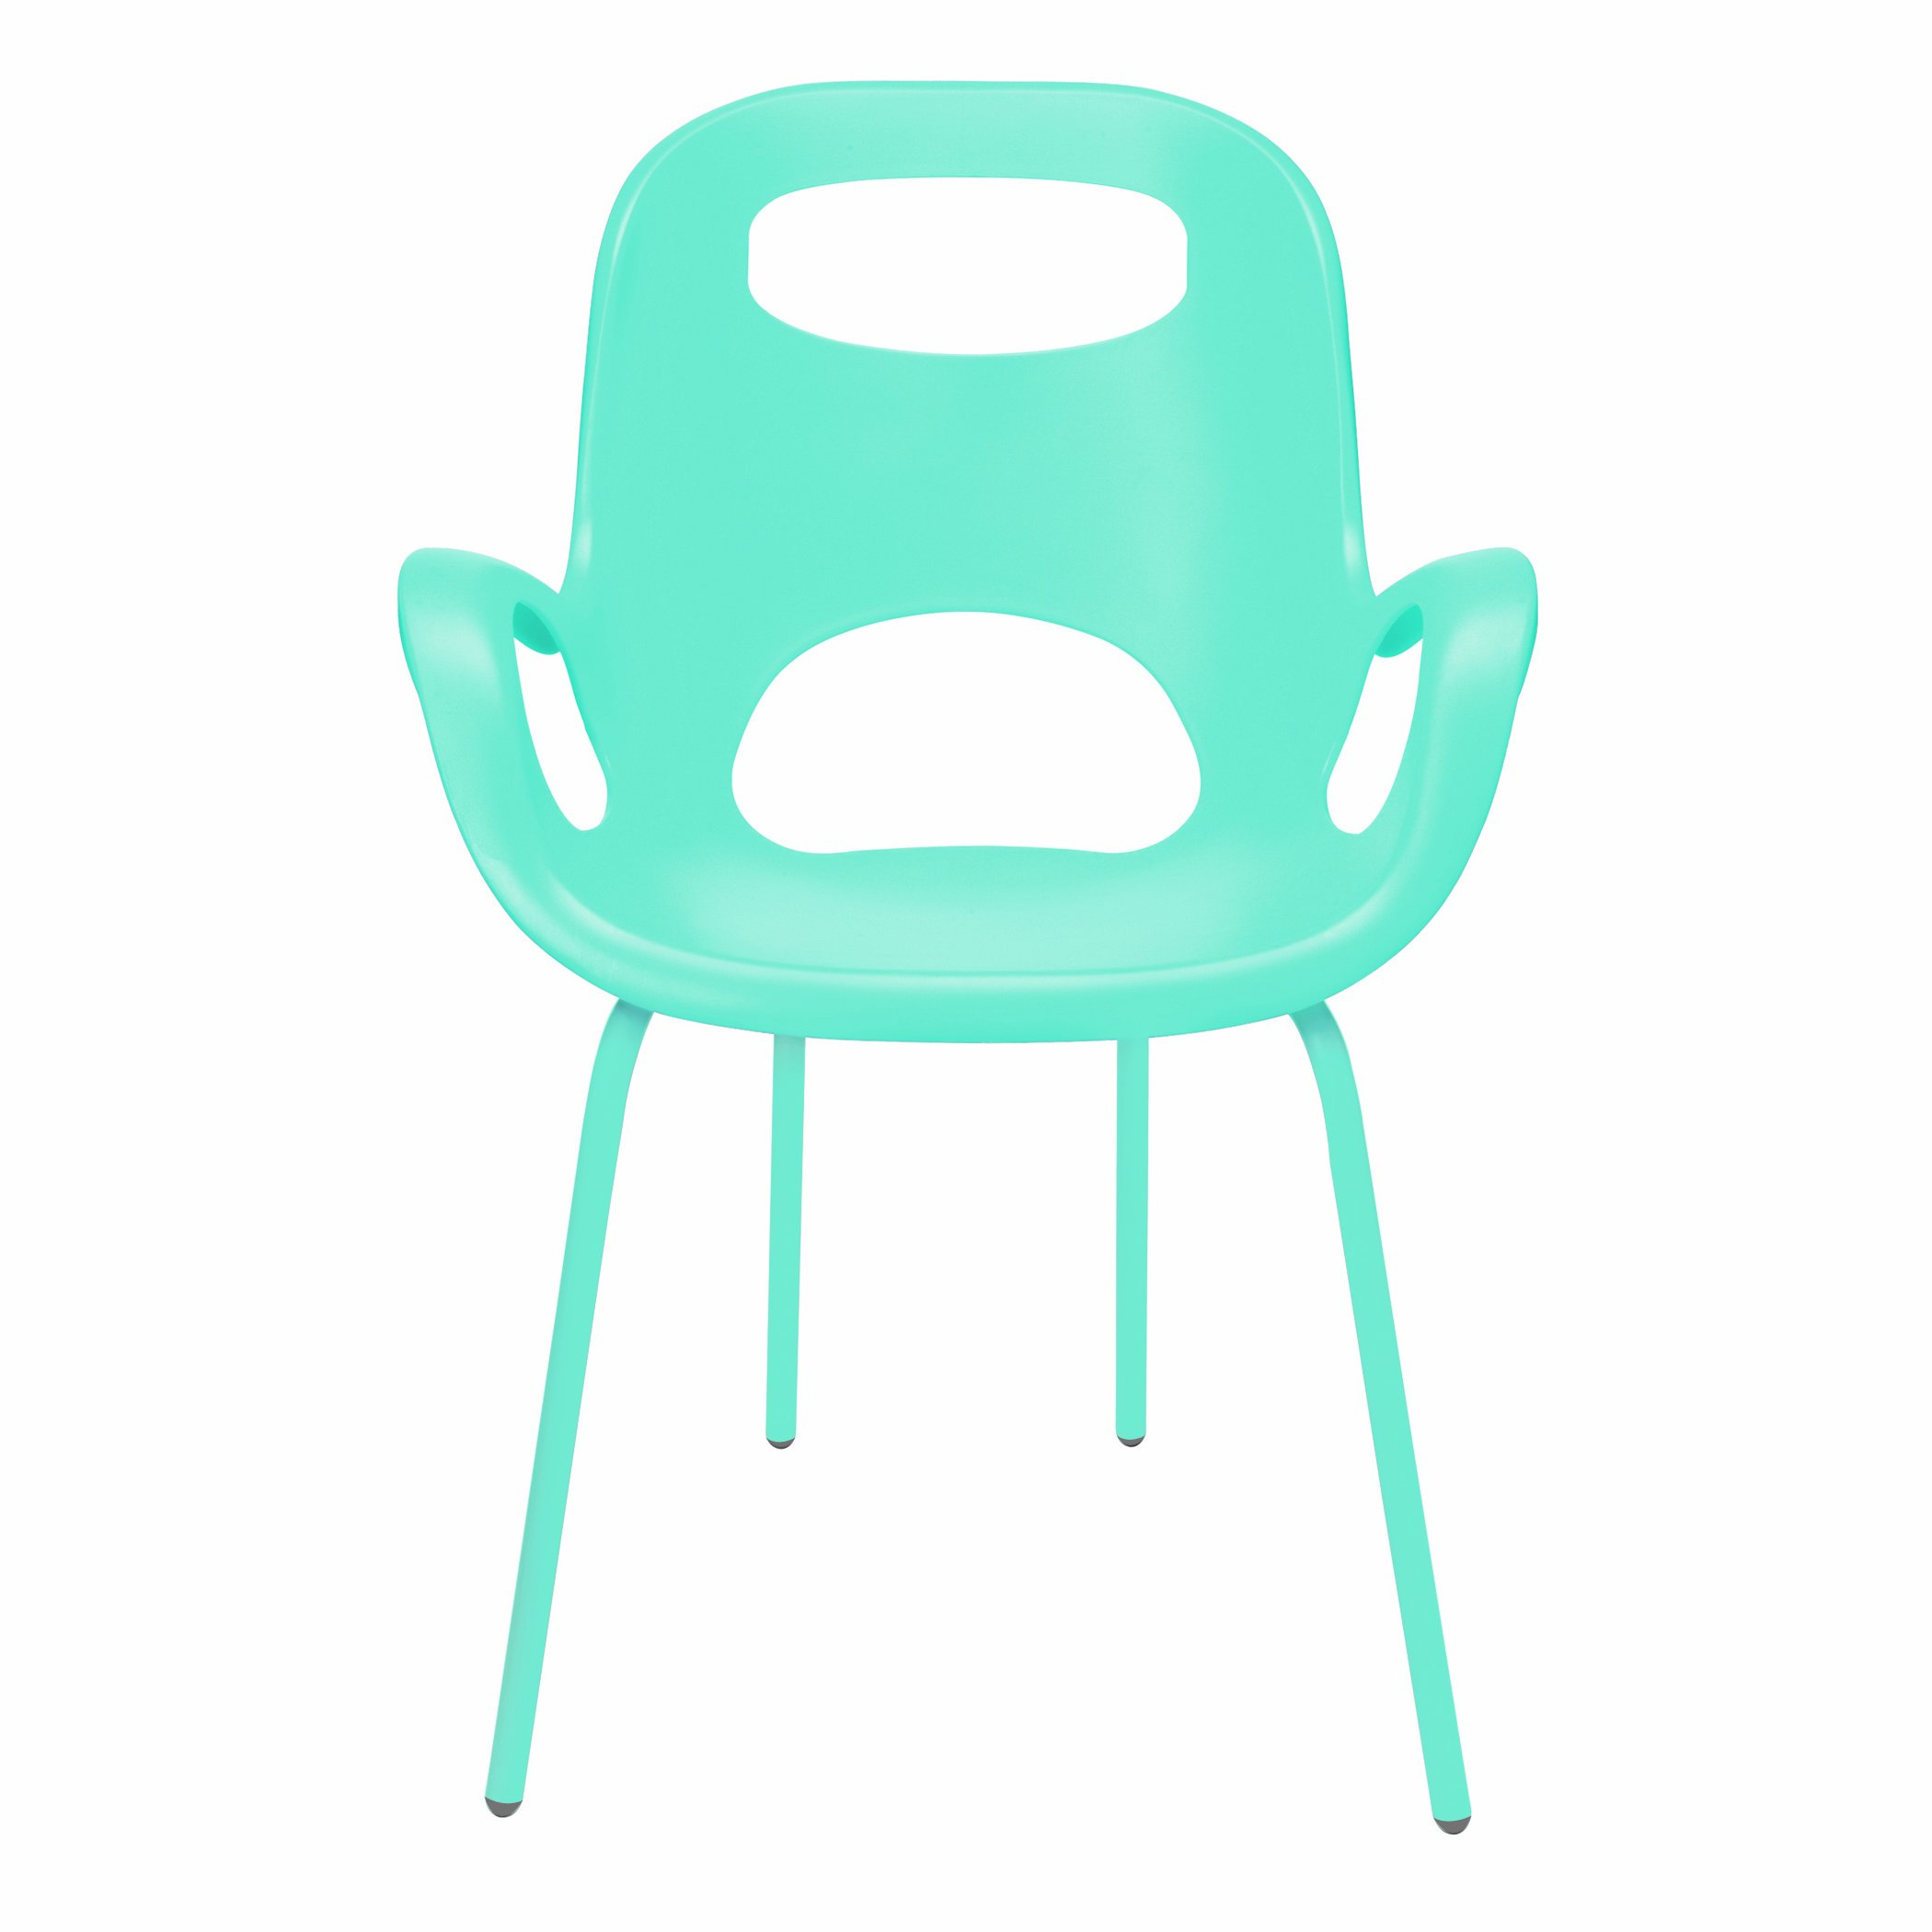 Umbra Oh Chair, Comfortable Seating Indoors and Outdoors, Weather-Resistant, Surf Blue